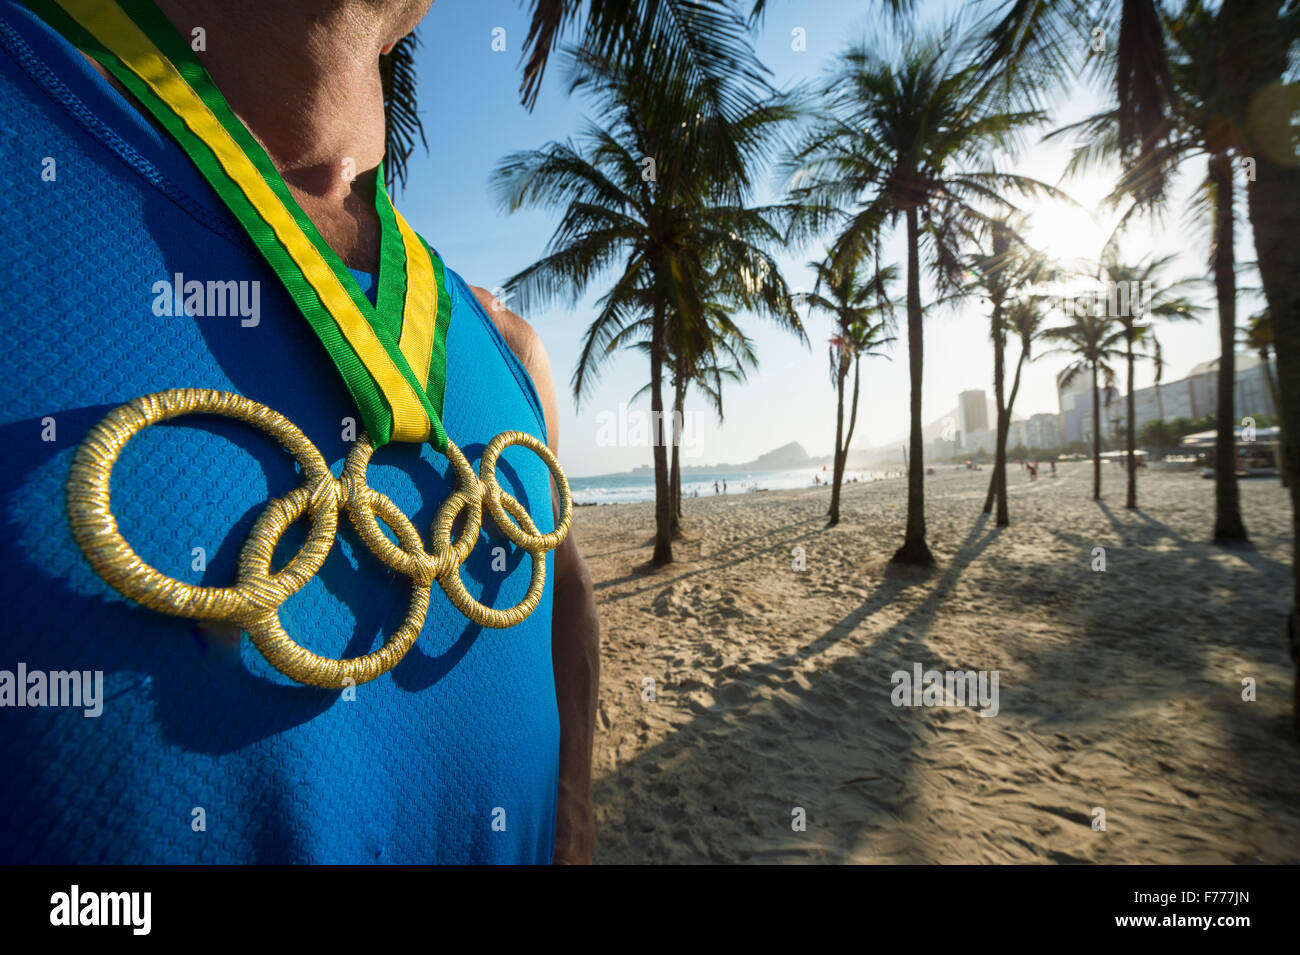 RIO DE JANEIRO, BRAZIL - OCTOBER 30, 2015: Athlete wearing Olympic rings gold medal stands in front of a sunset - Stock Image